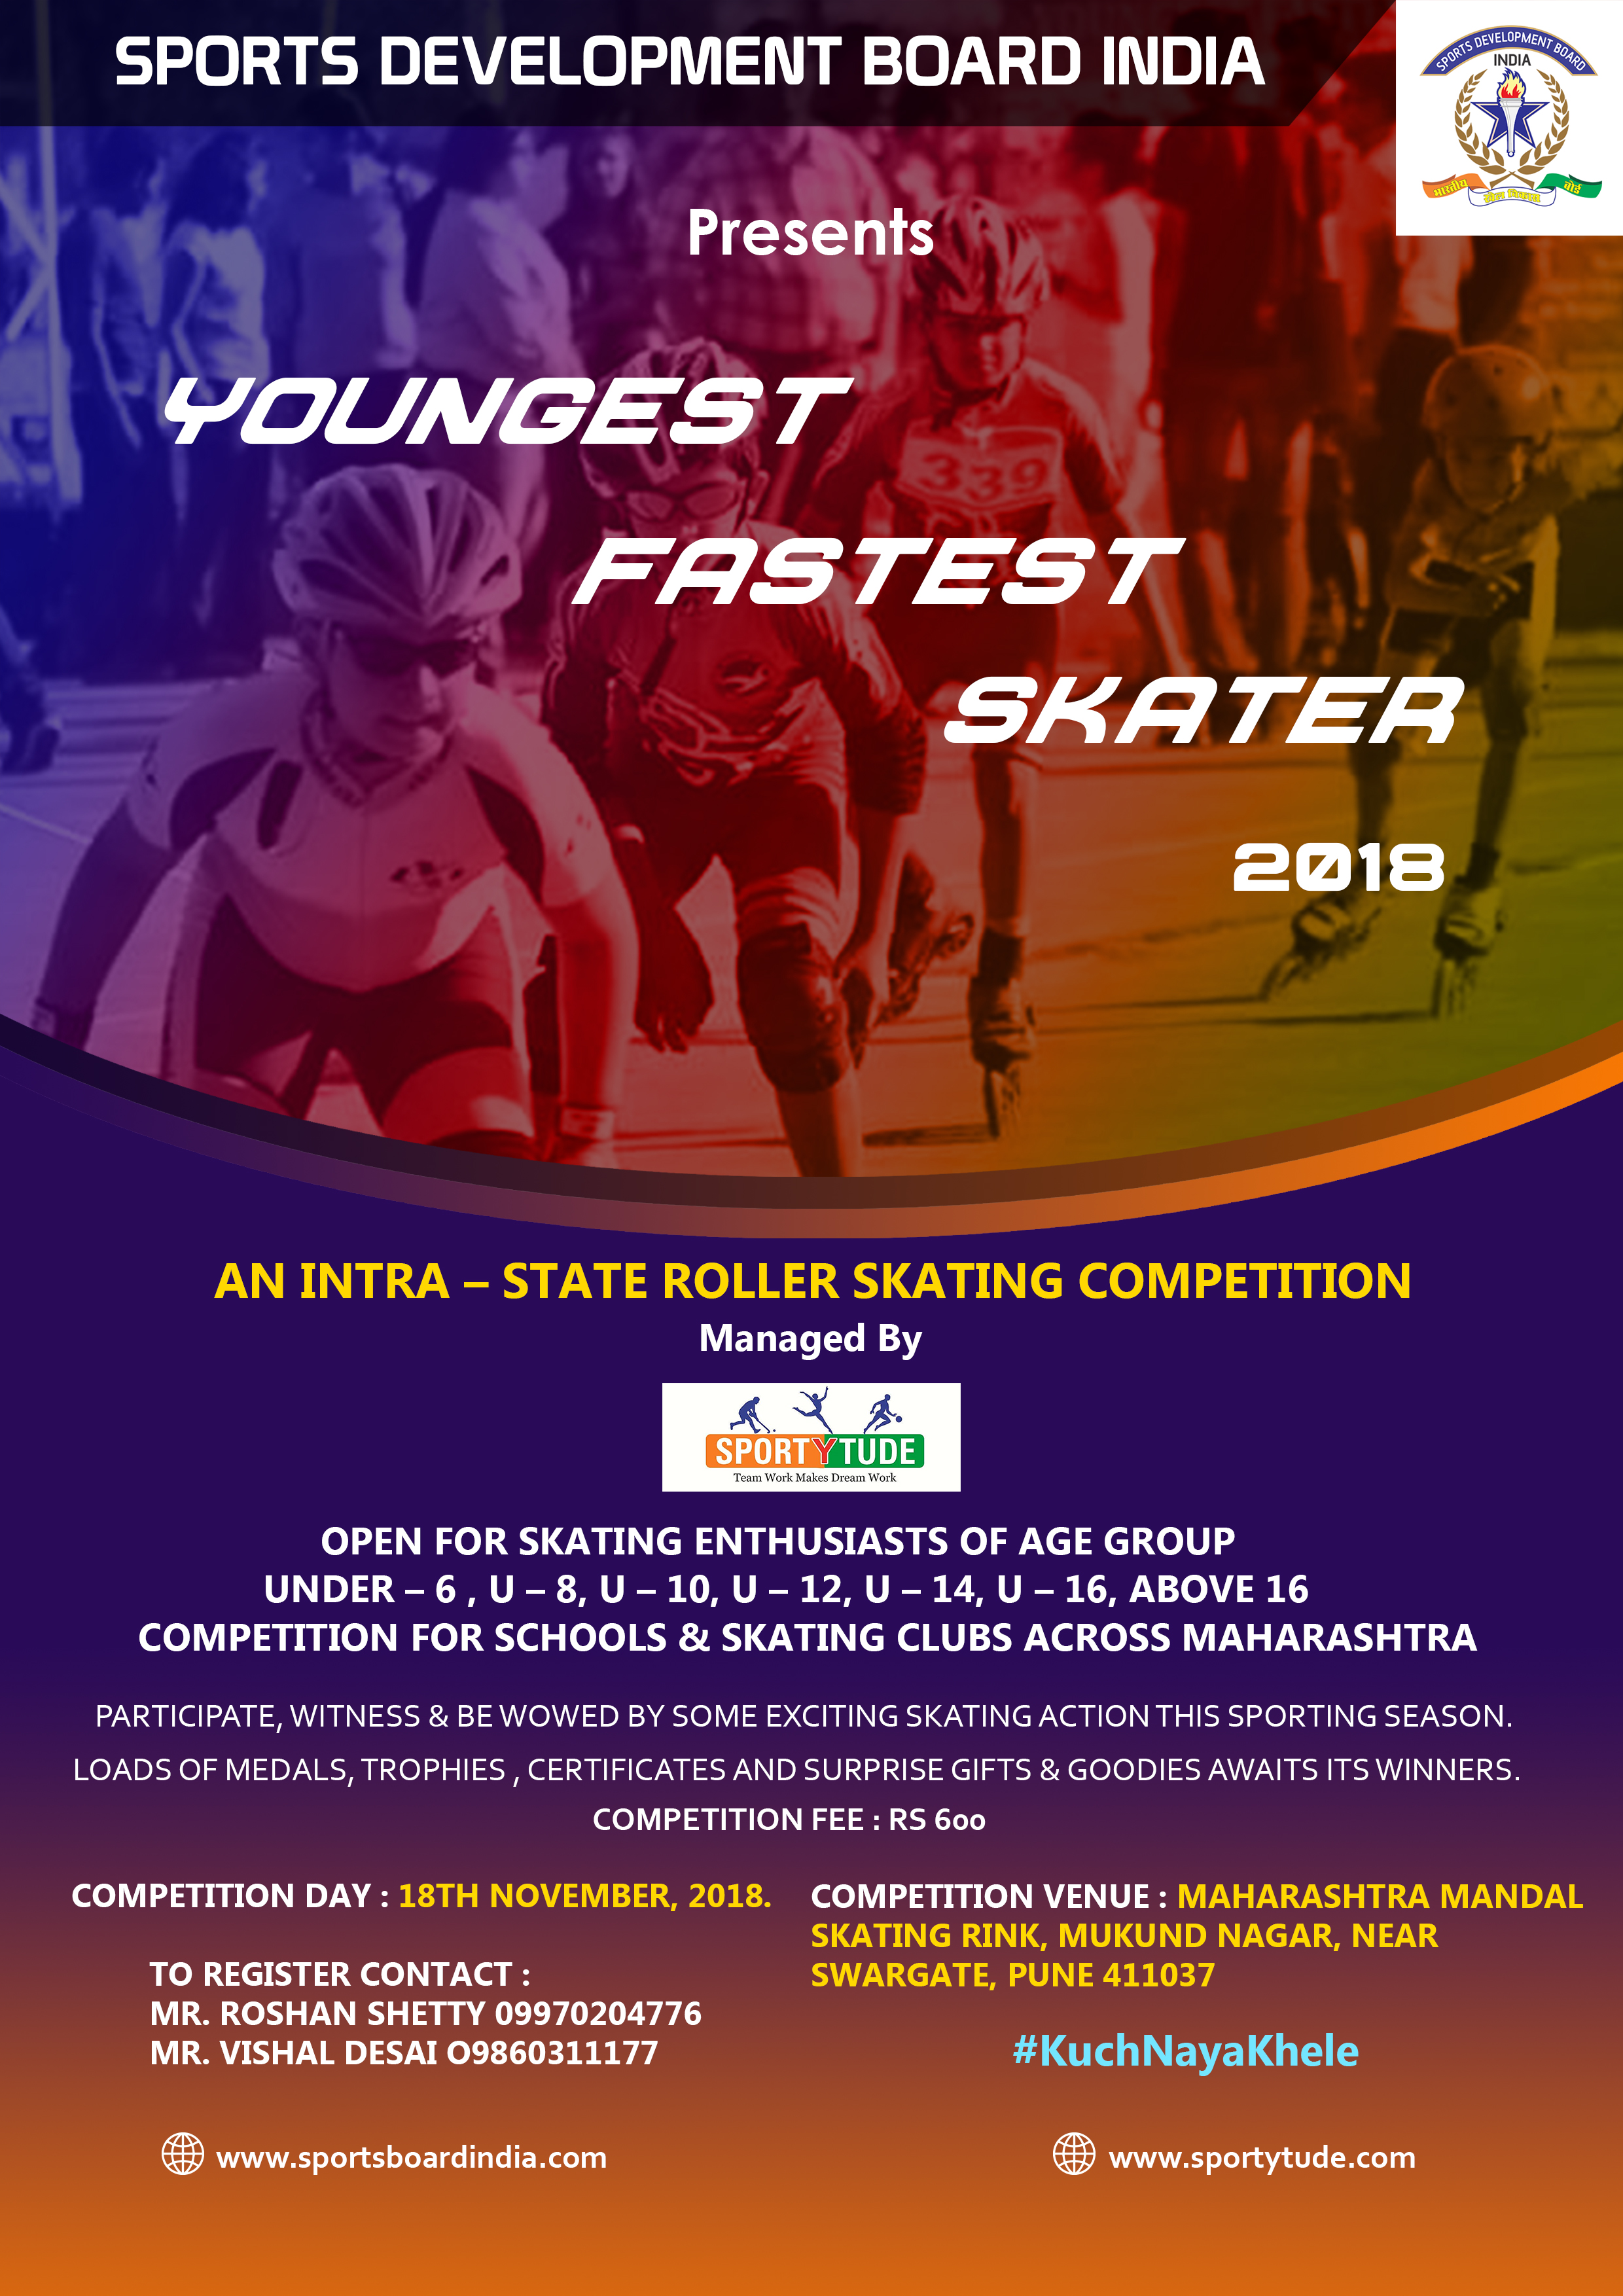 Youngest Fastest Skater 2018